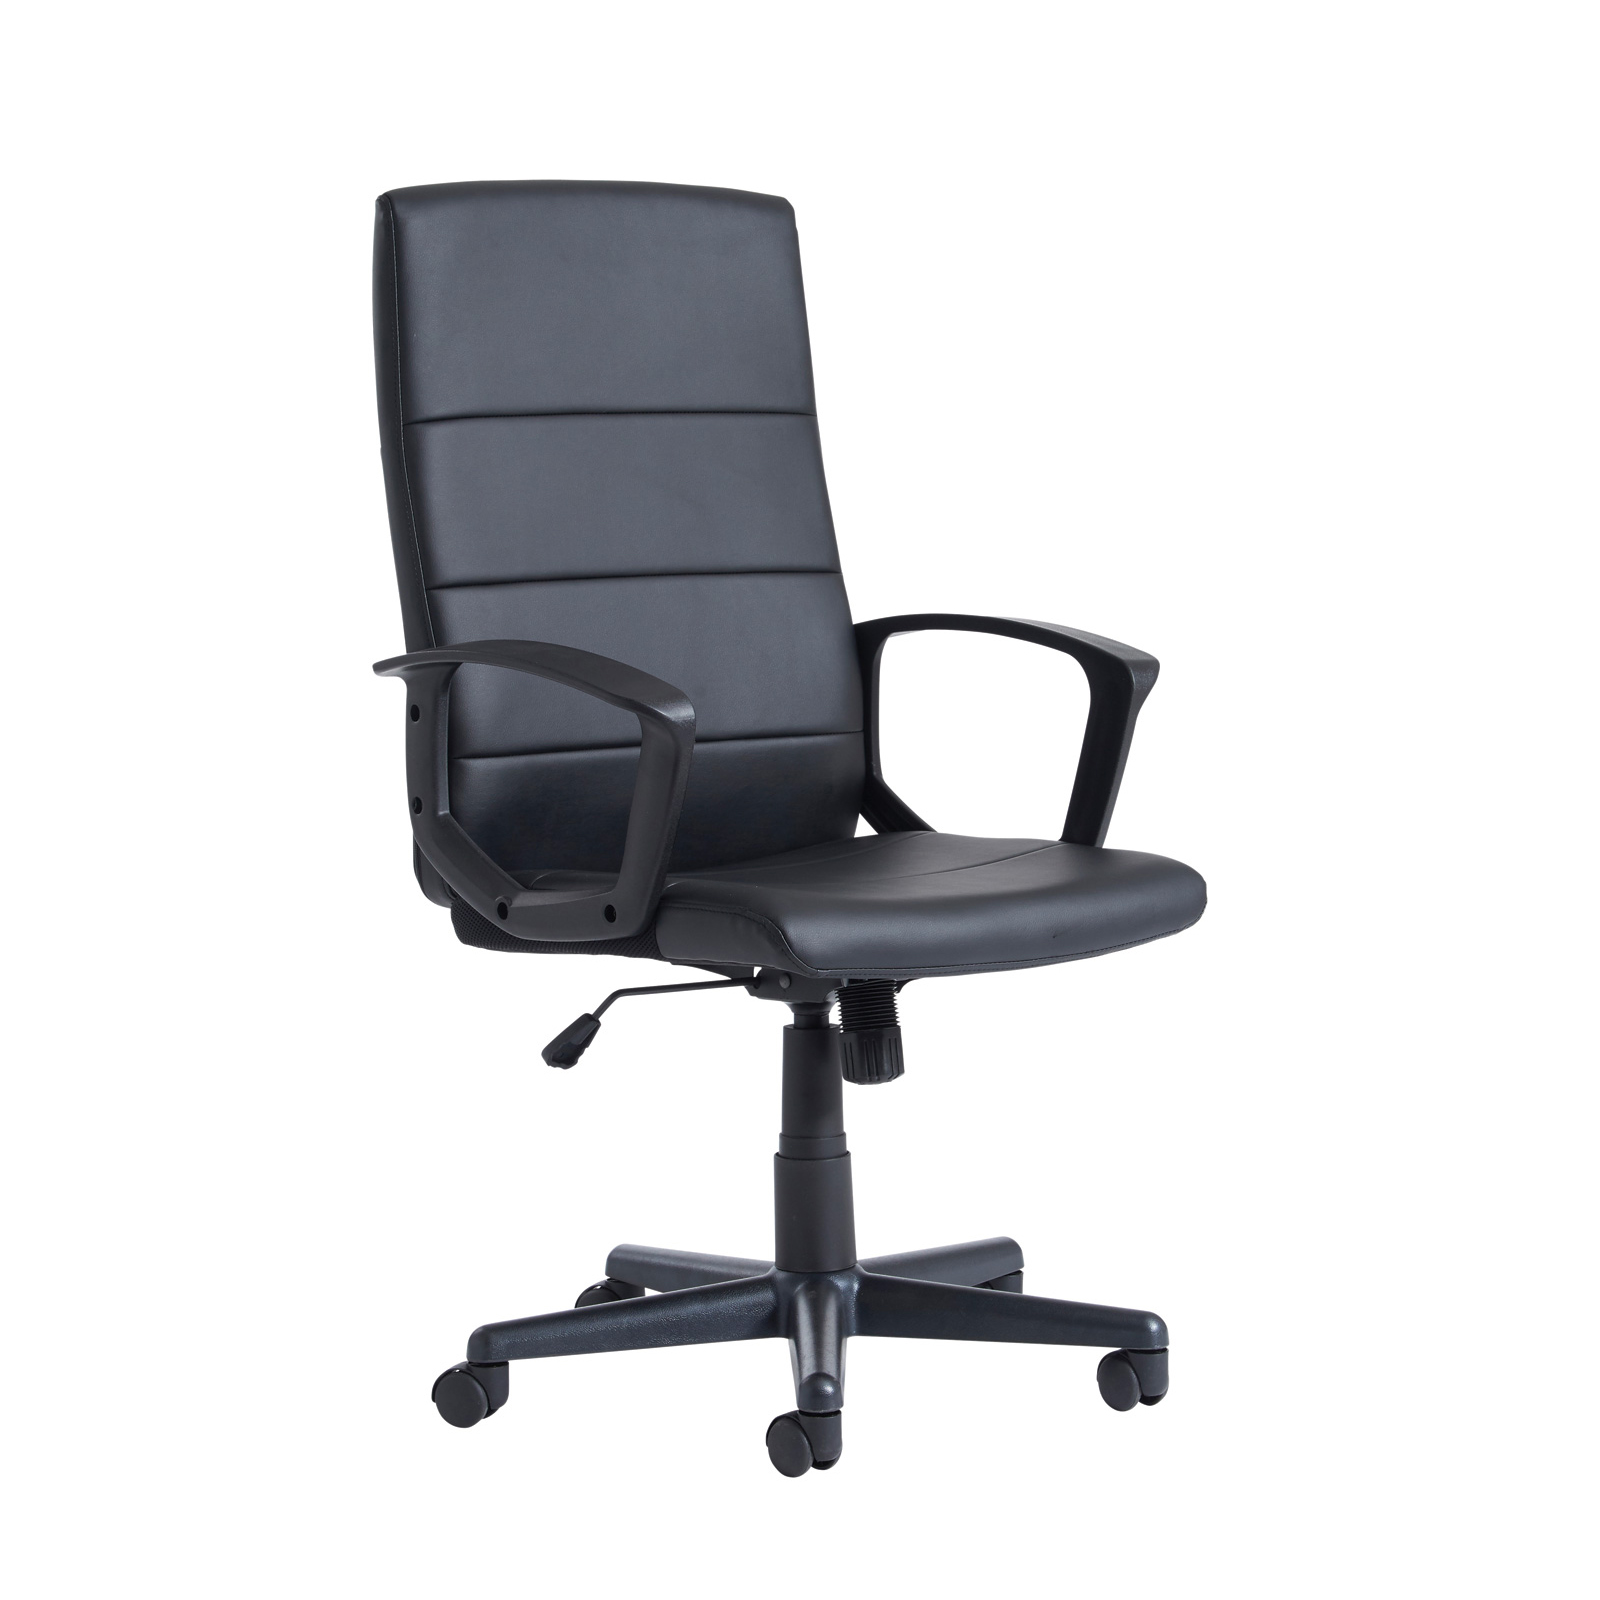 Executive Chairs Ascona high back managers chair - black faux leather